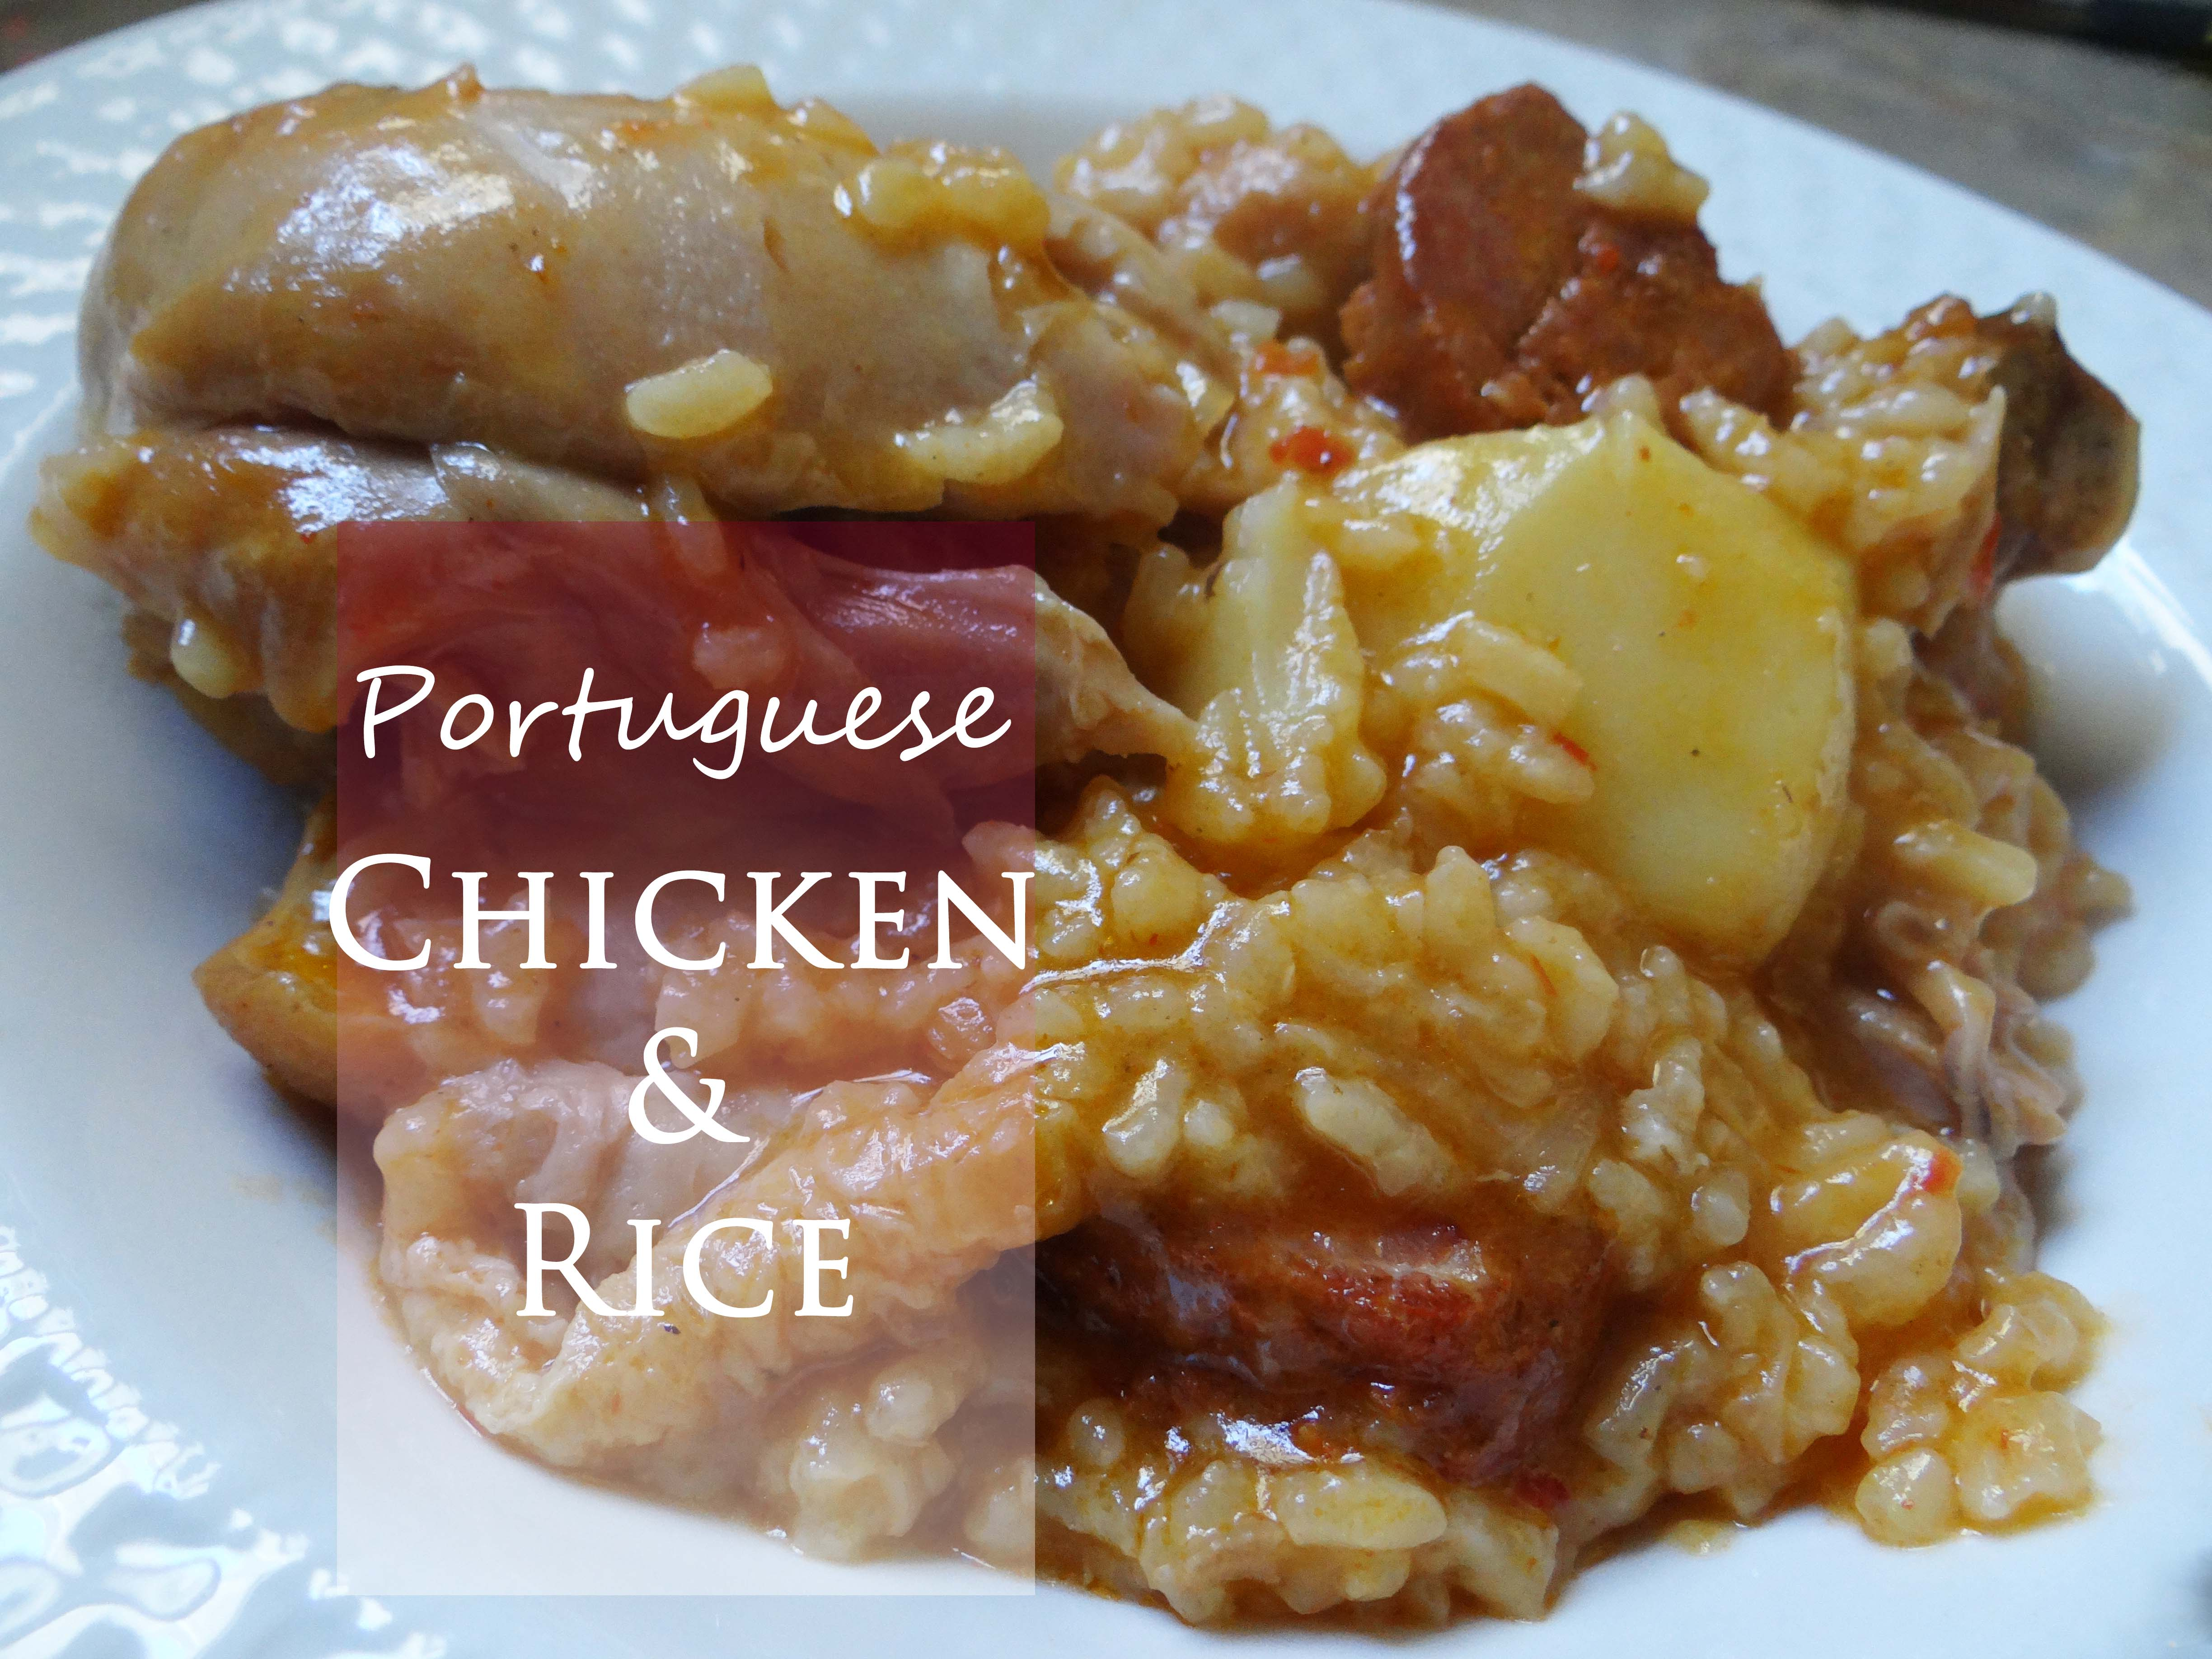 Portuguese blade meat sandwiches recipes